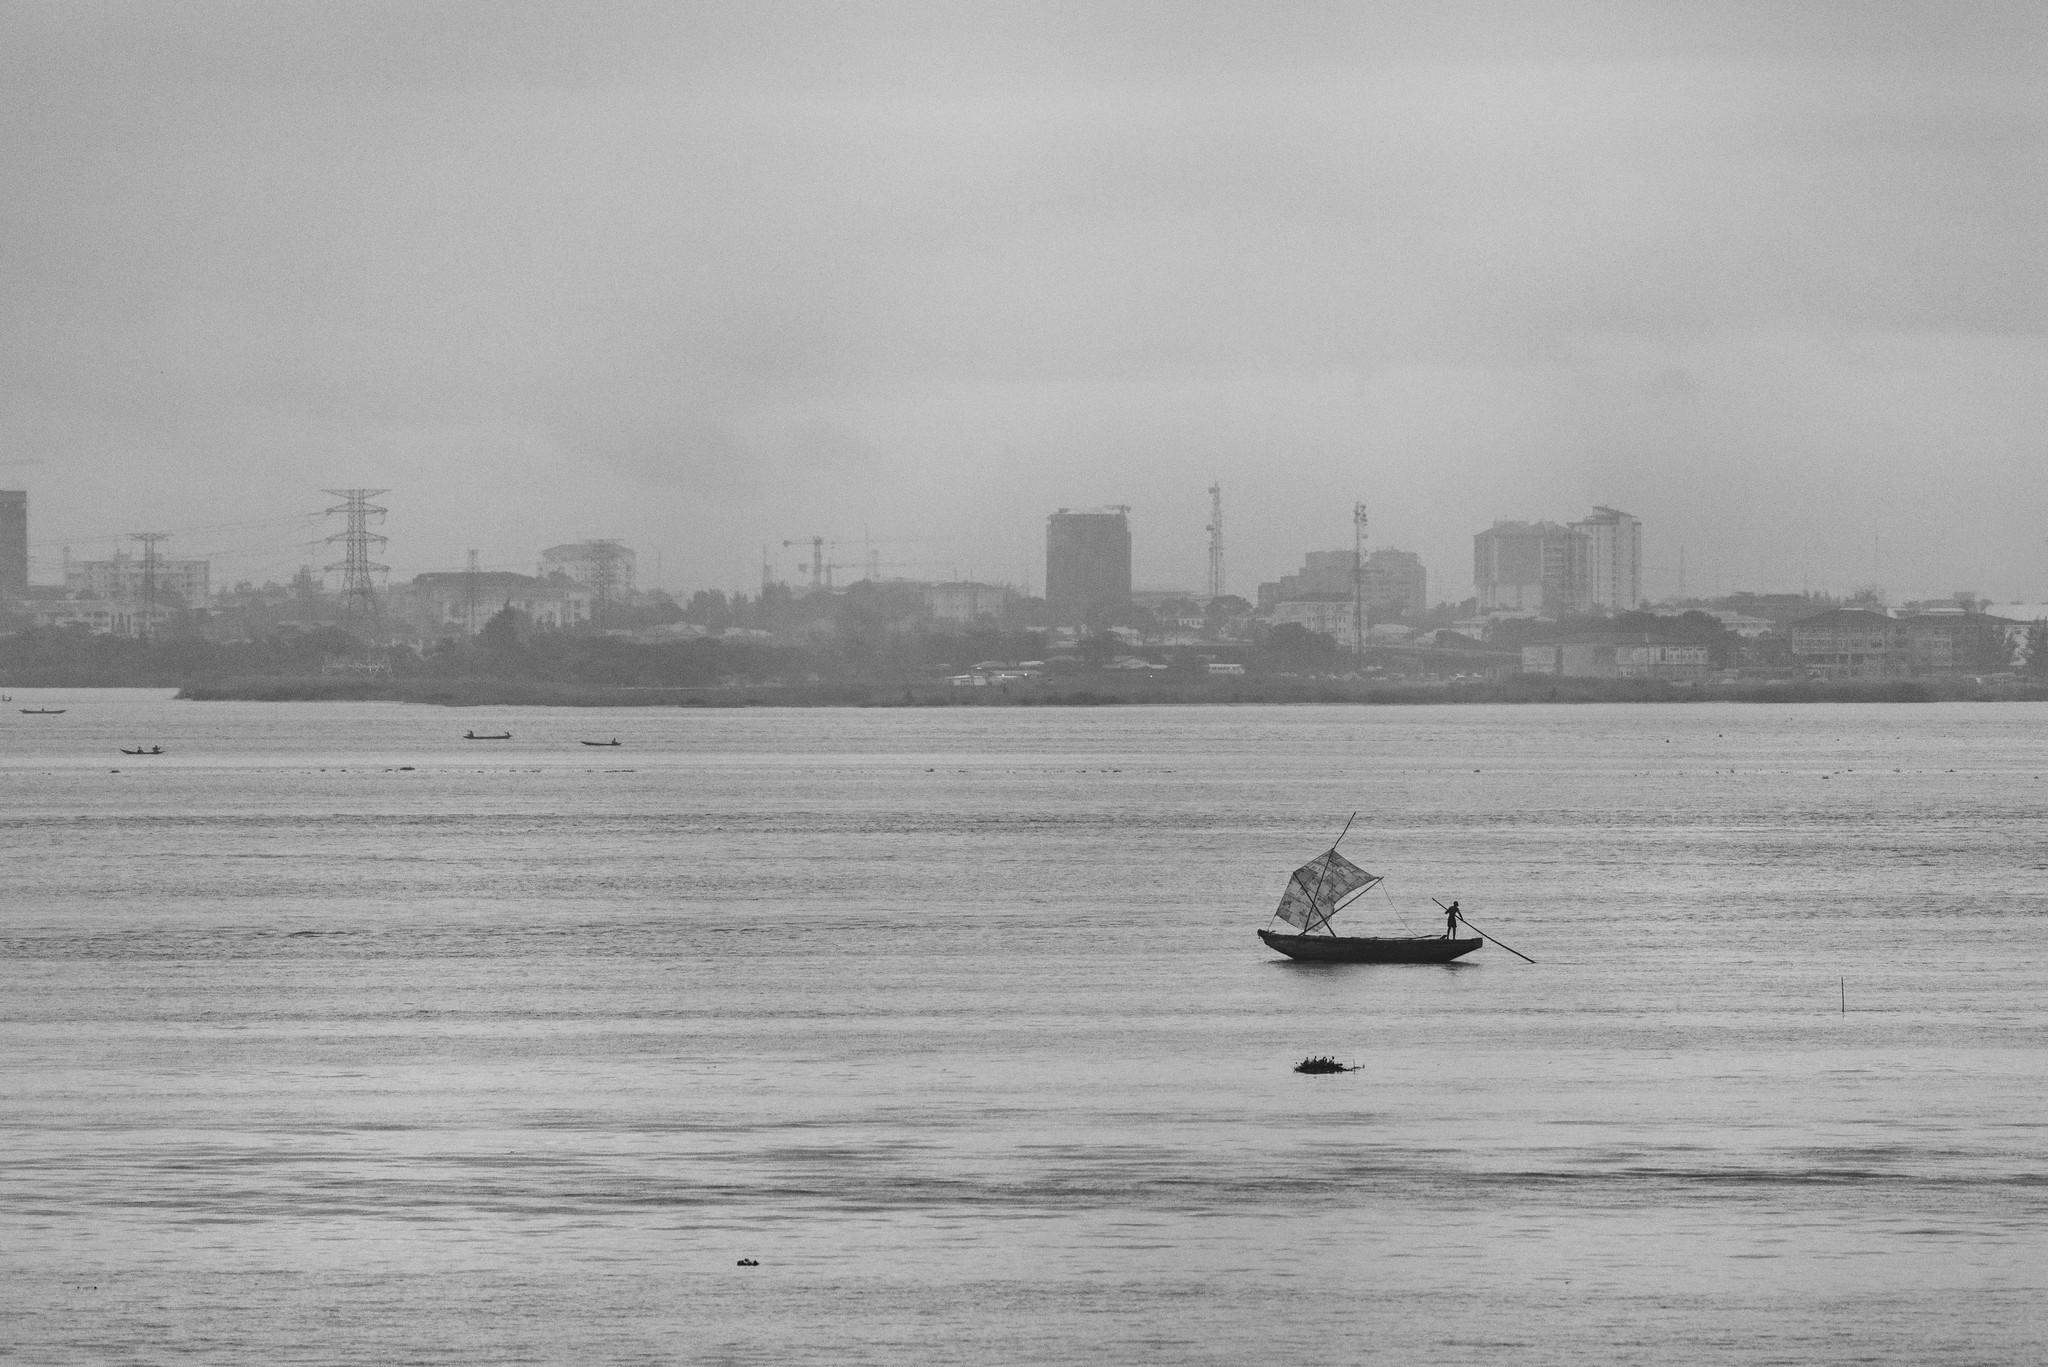 Sand Collector in Lagos Lagoon